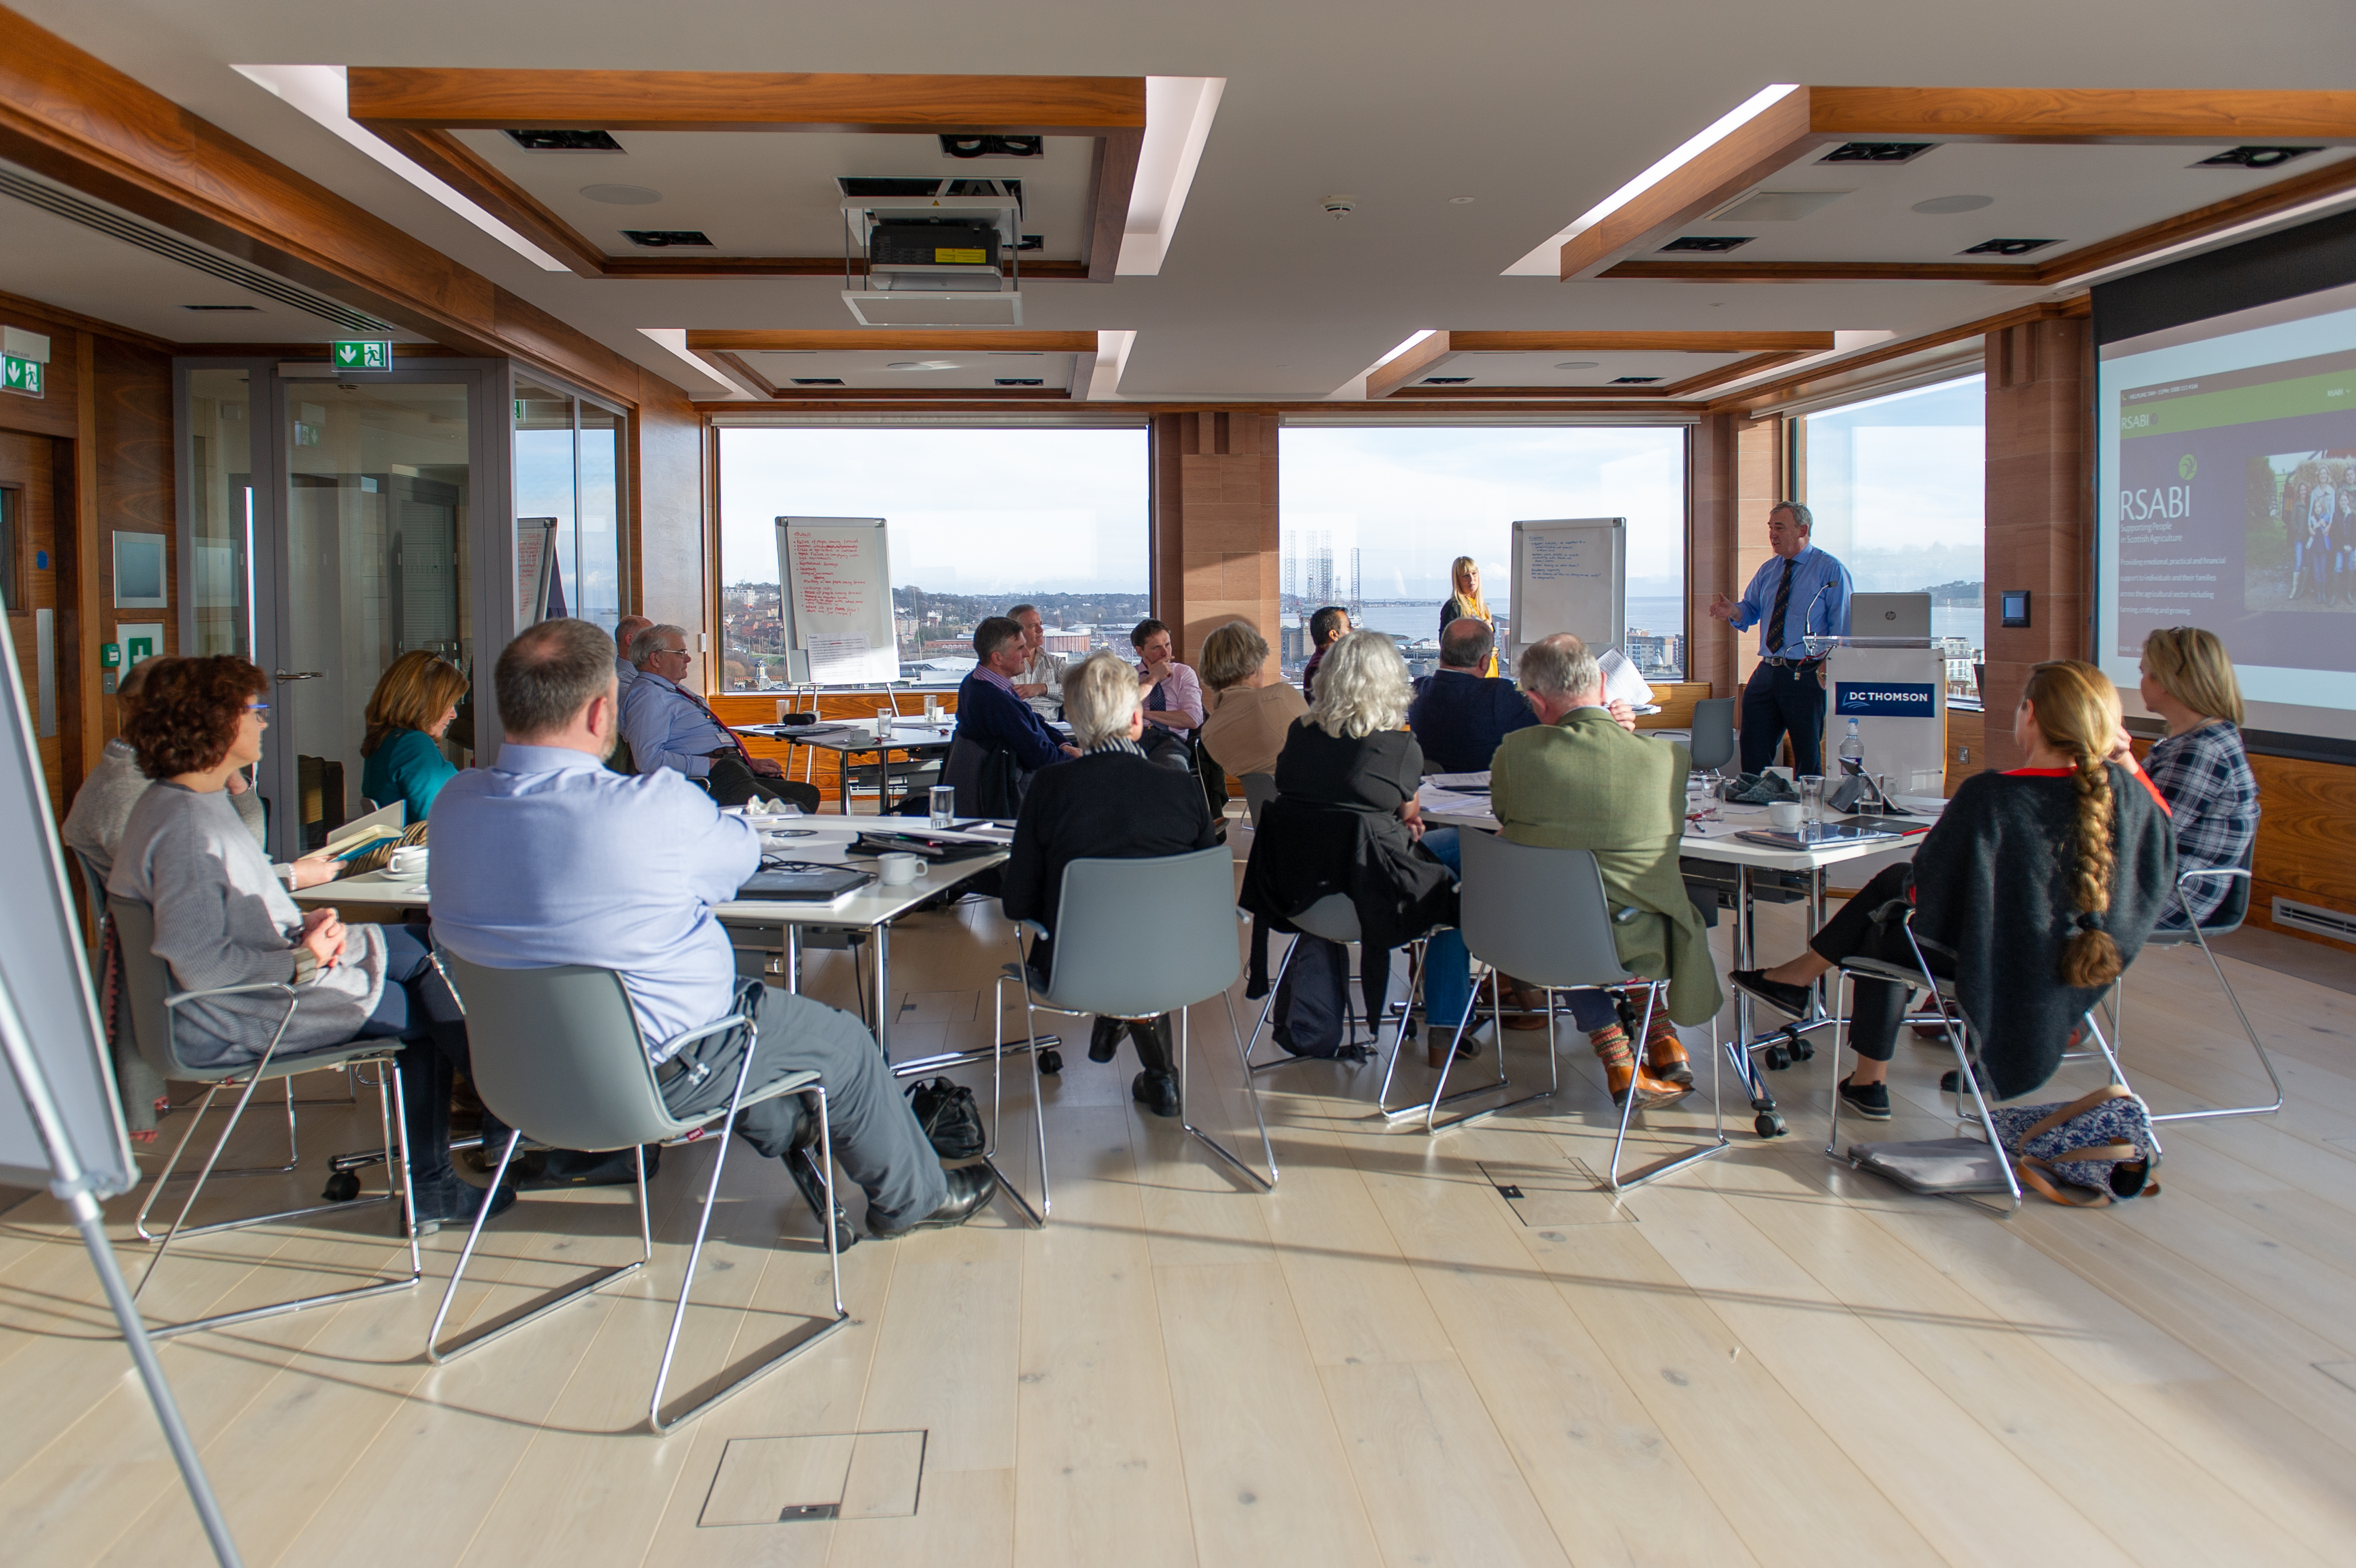 RSABI trustees met in DC Thomson's headquarters in Dundee to discuss a five-year strategy.